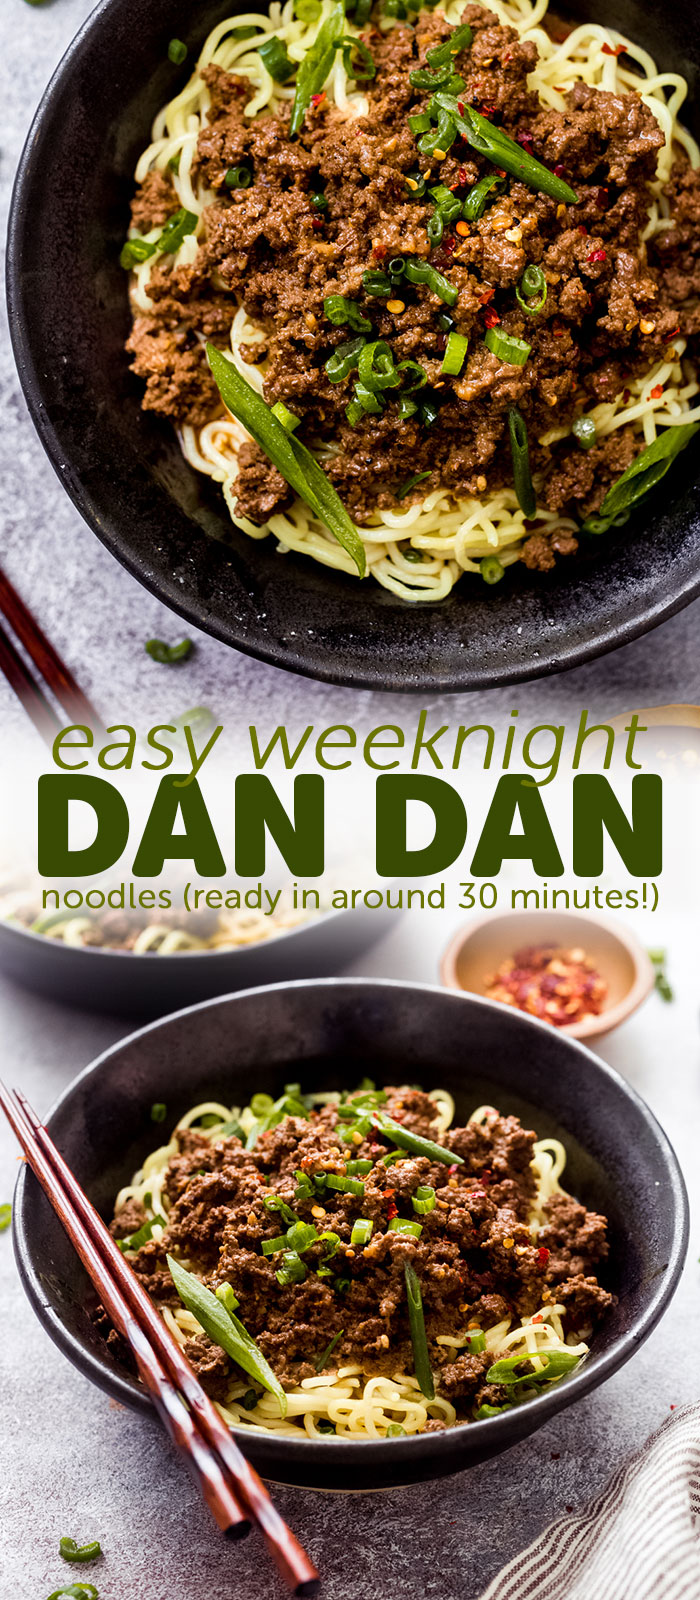 Weeknight Dan Dan Noodles (Just like Take-out!) These noodles can be made with ground chicken, ground beef, ground turkey, or even pork! Ready in about 30 minutes #pastarecipes #asiantakeout #takeoutfakeout #dandannoodles #dandannoodlerecipe | Littlespicejar.com